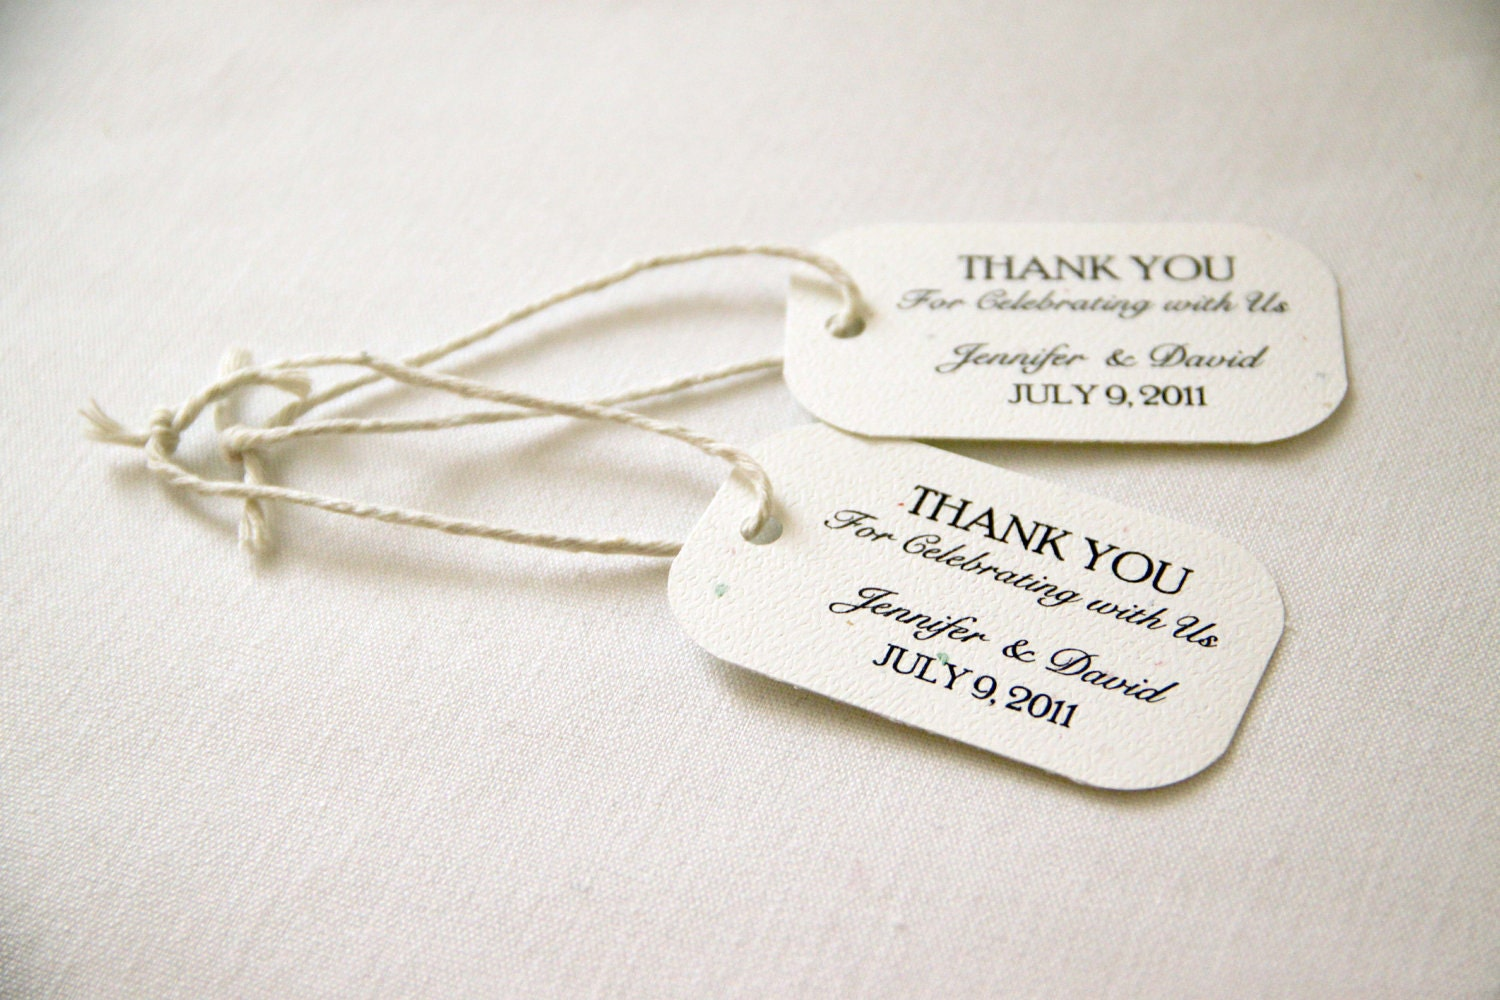 Wedding Gift Tags Ideas : 150 Mini Wedding Favor Gift Tags Classic Thank You